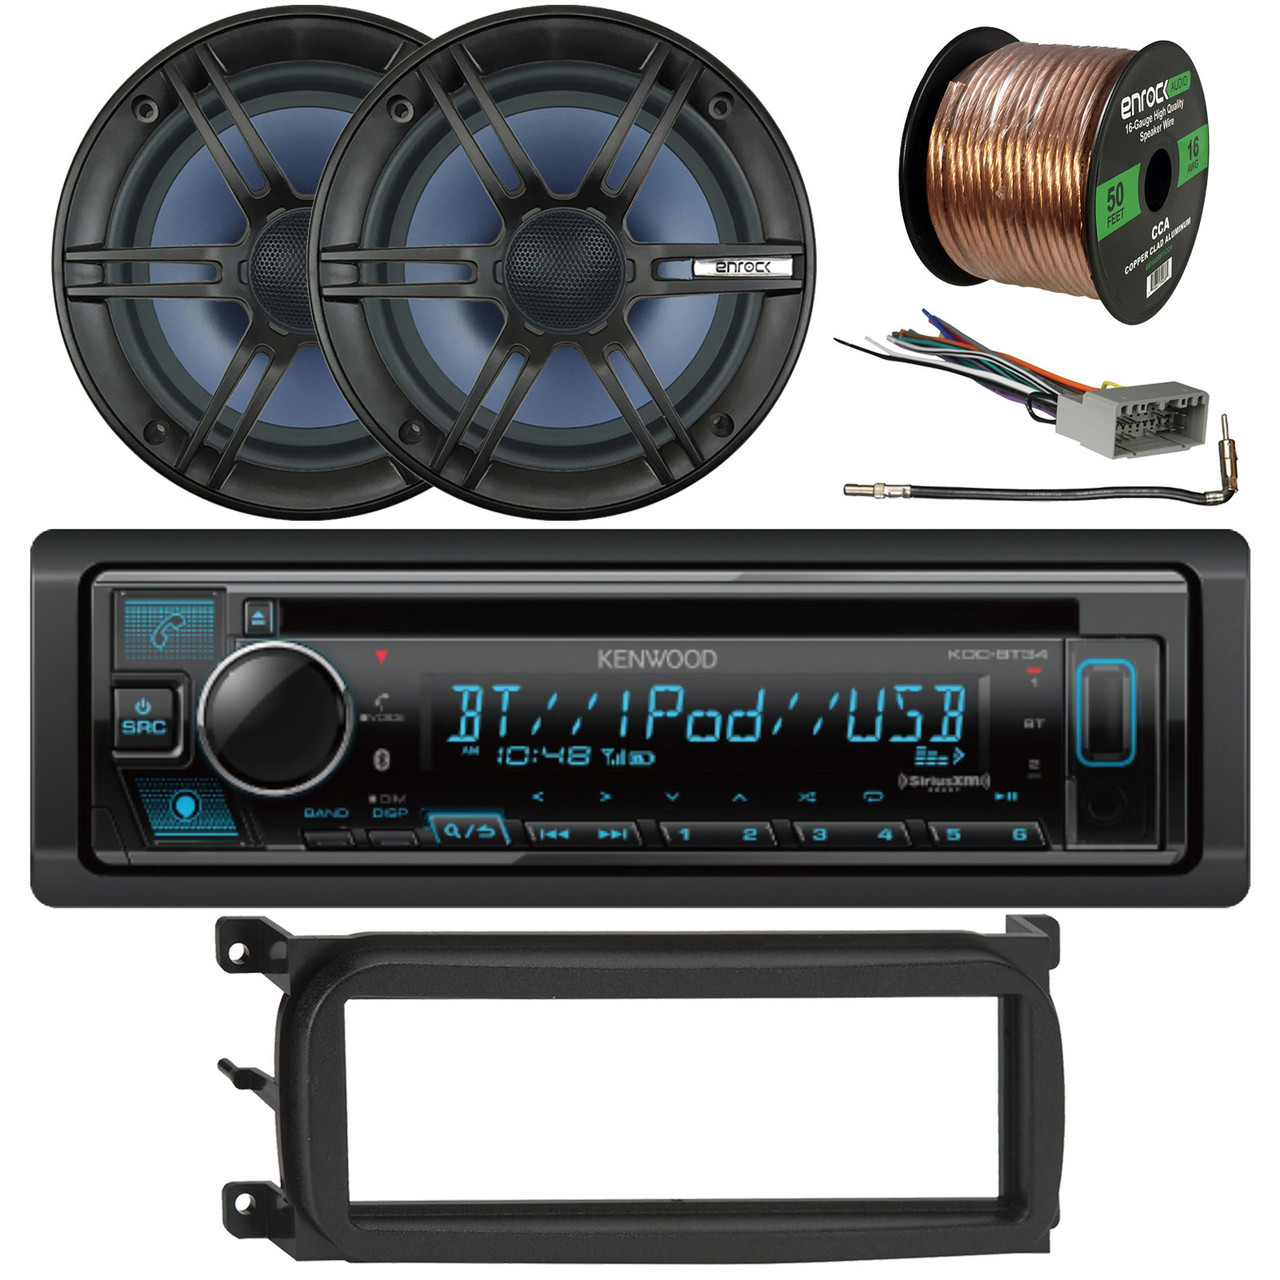 NEW KENWOOD 3-WAY STEREO FRONT OR REAR AUDIO SPEAKERS W INSTALL KIT AND HARNESS